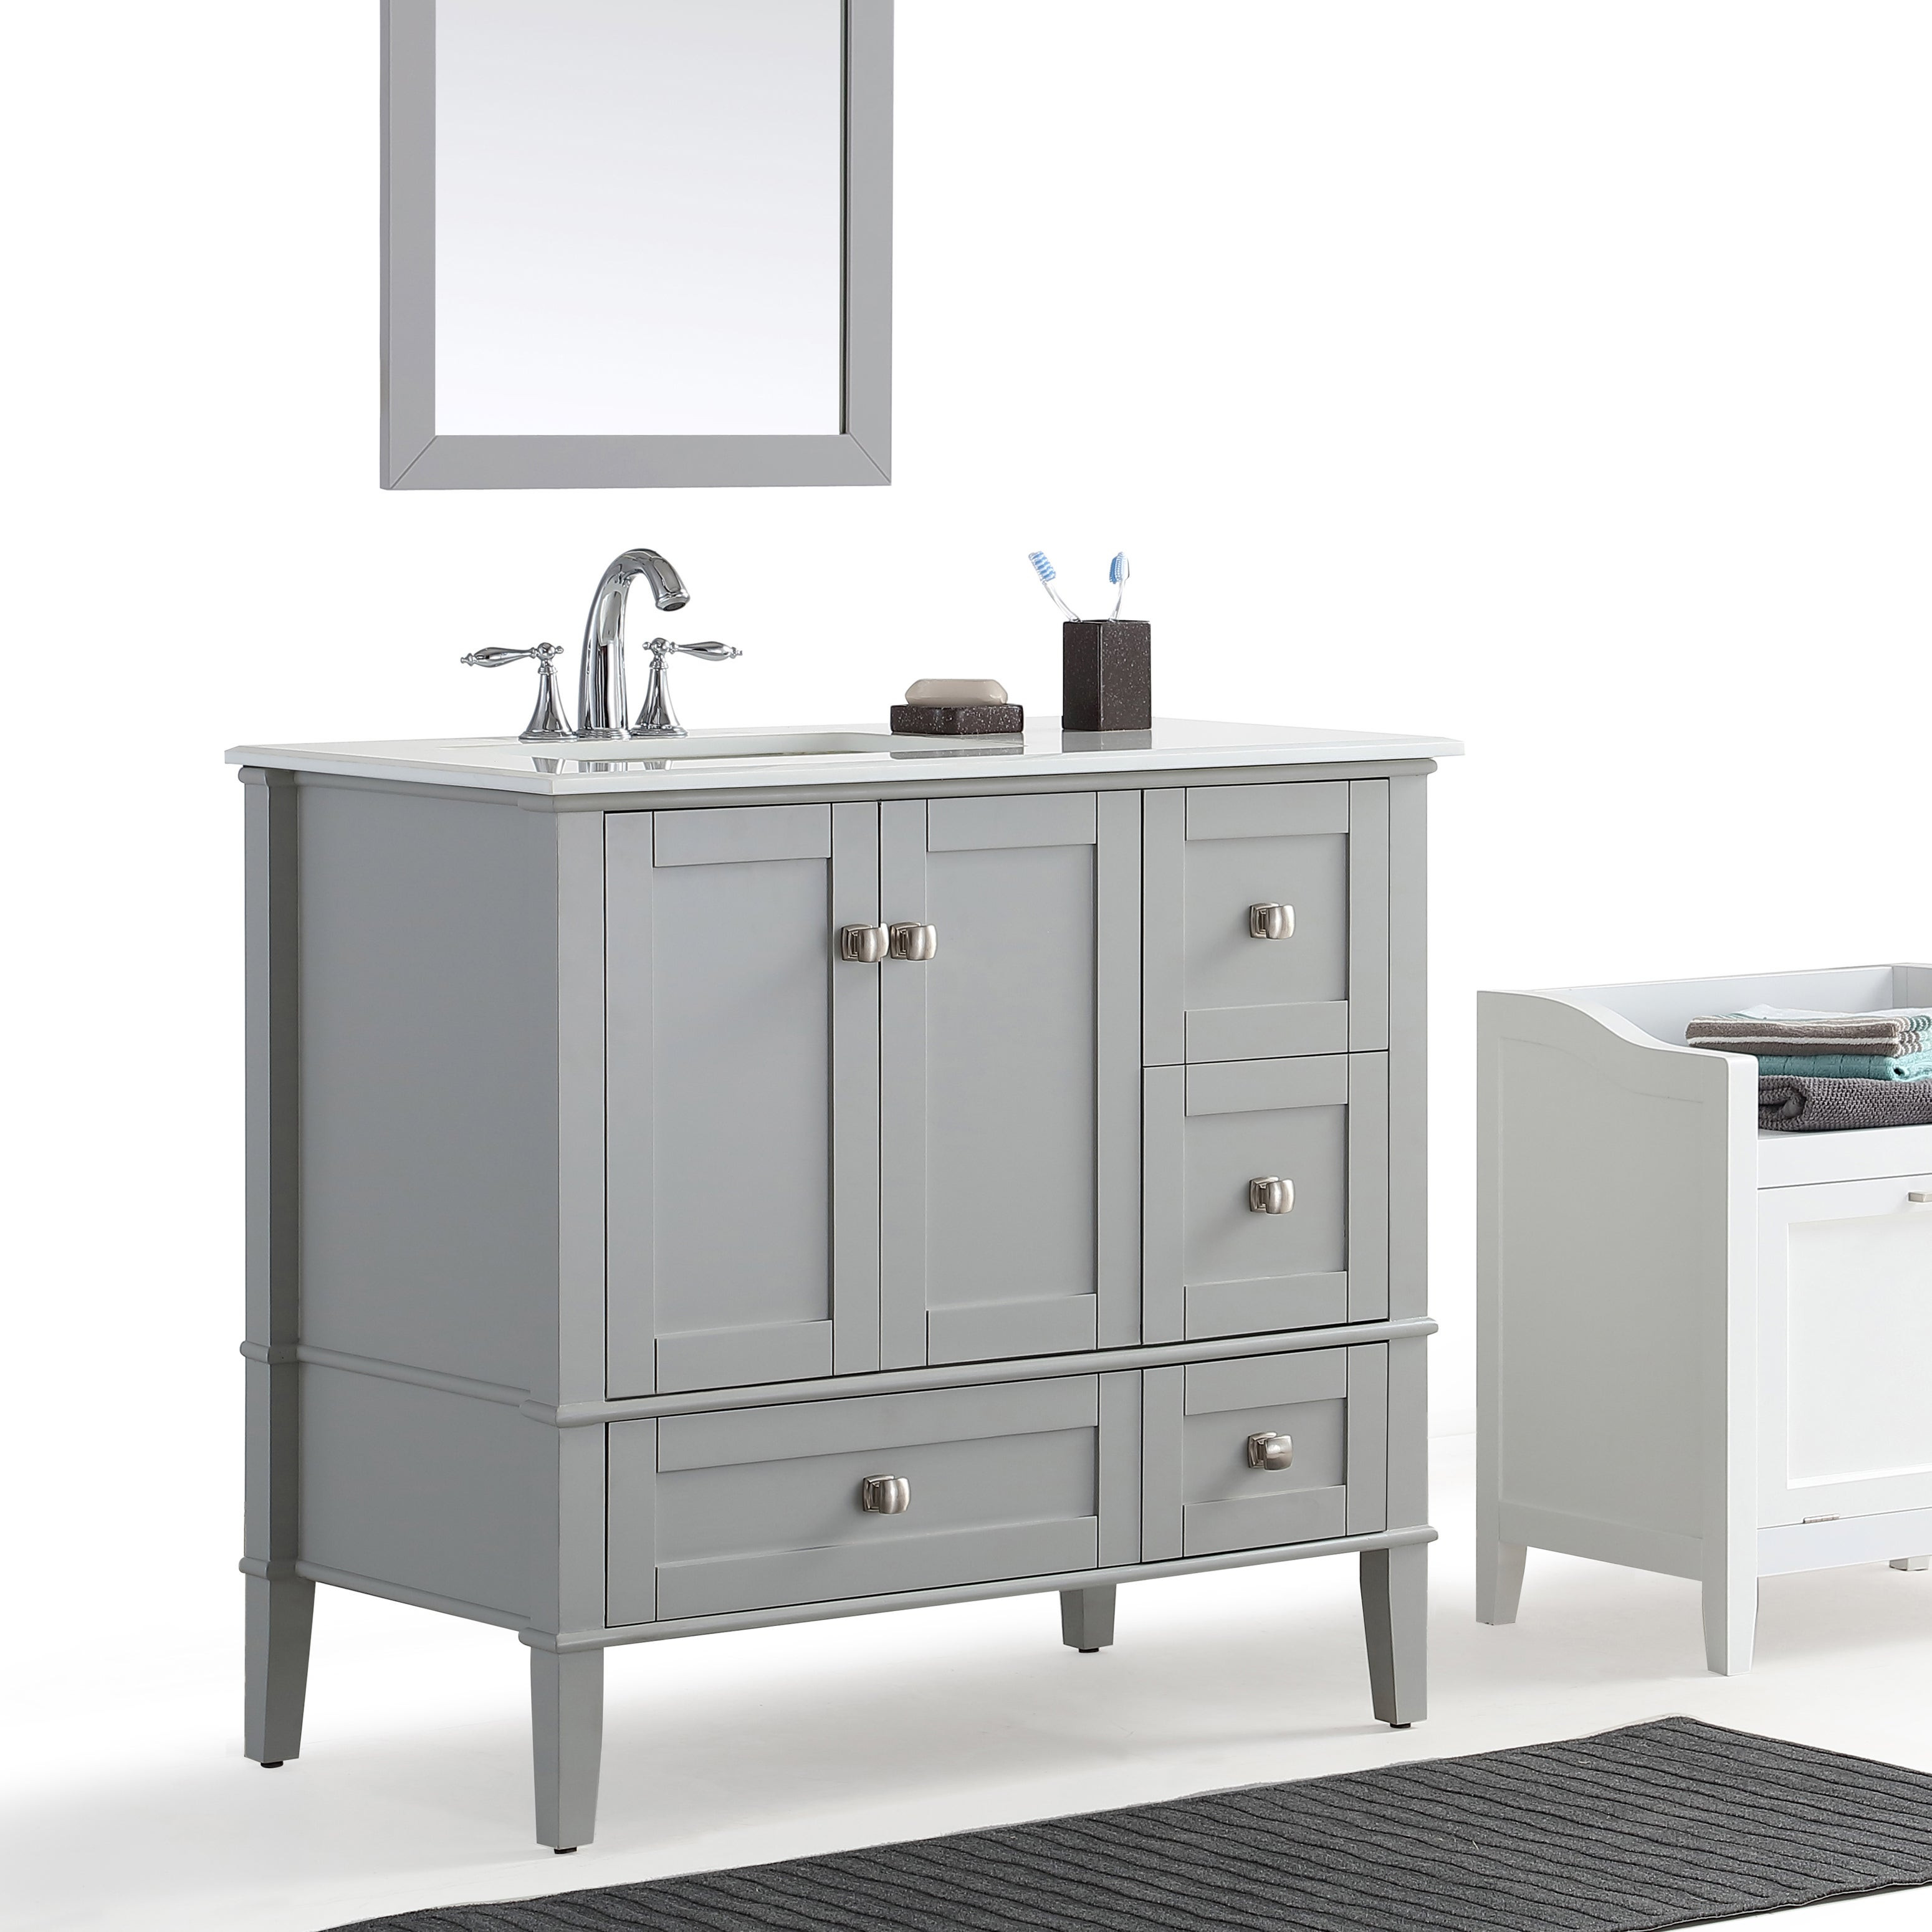 Best ideas about 36 Inch Bathroom Vanity . Save or Pin WYNDENHALL Windham Grey 36 inch fset Bath Vanity with Now.